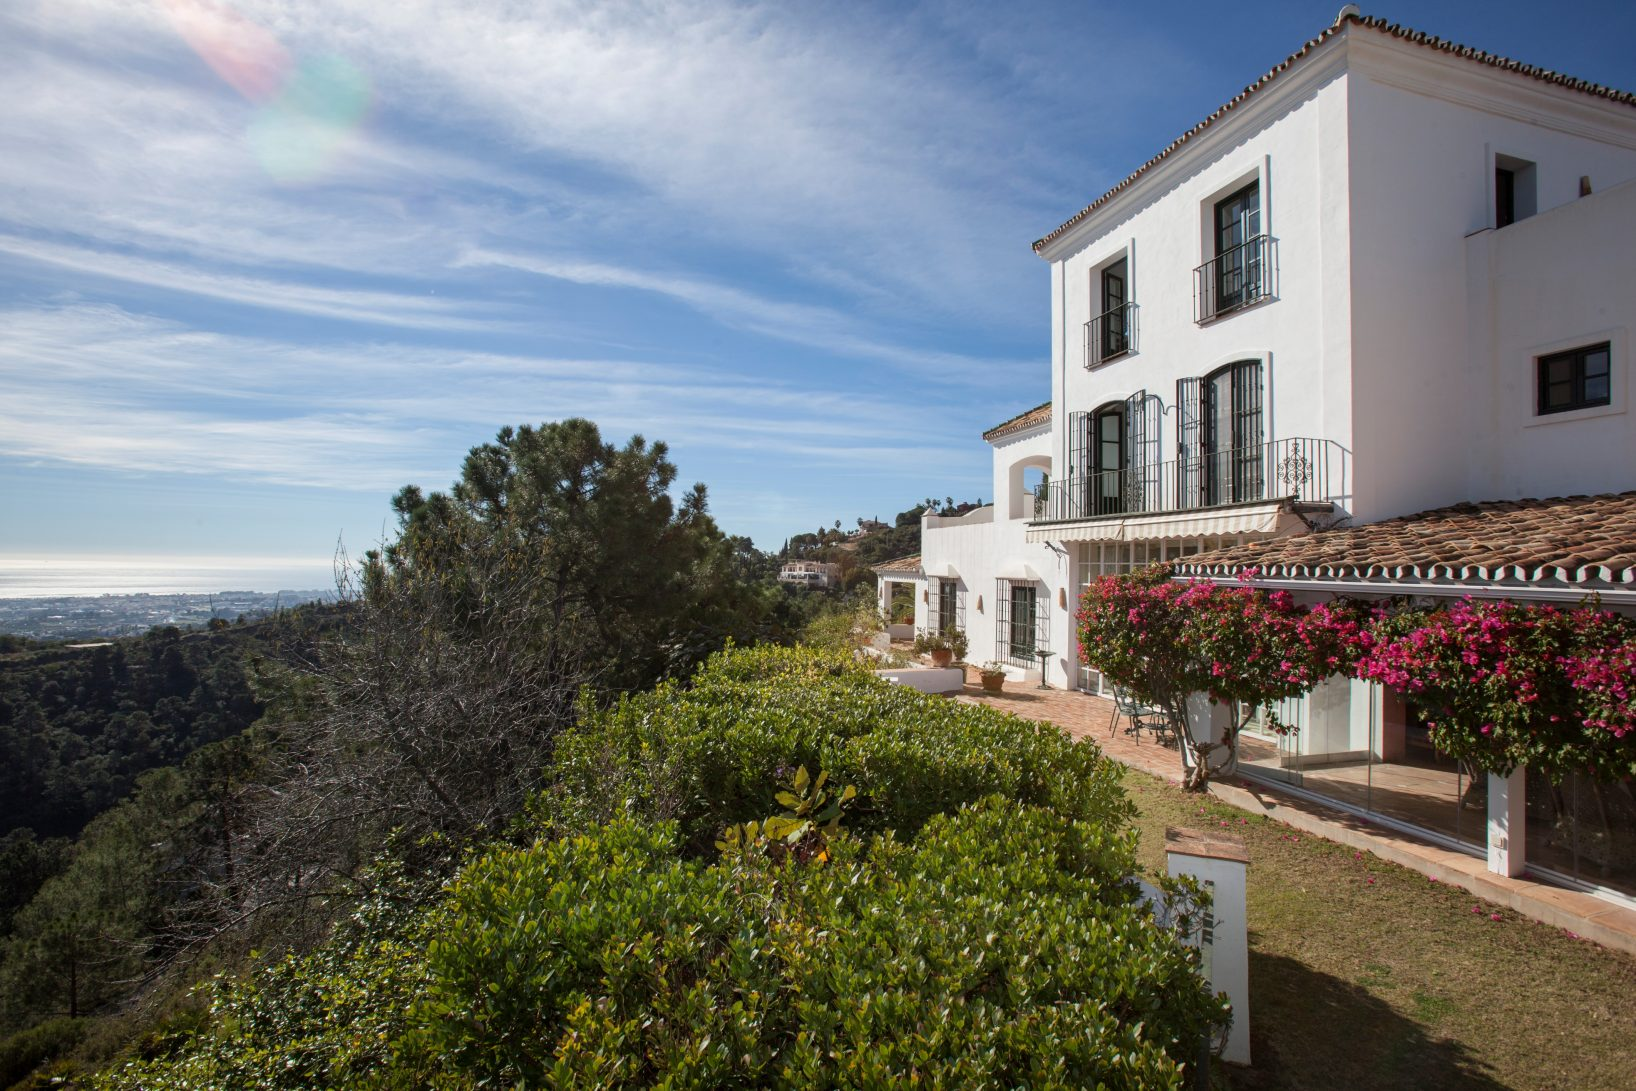 Property in Spain Expenses